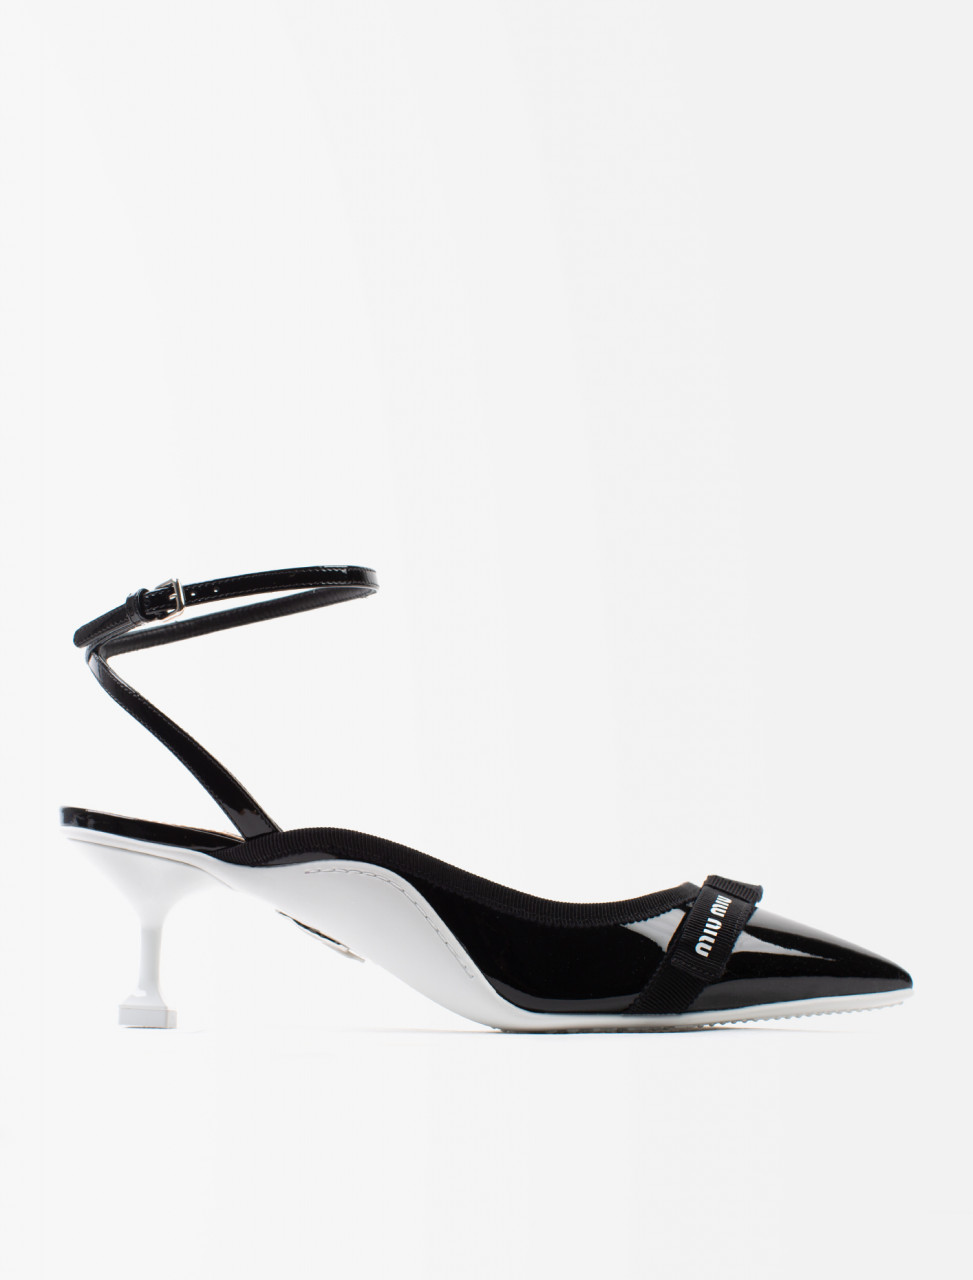 Patent Leather Strap Heels